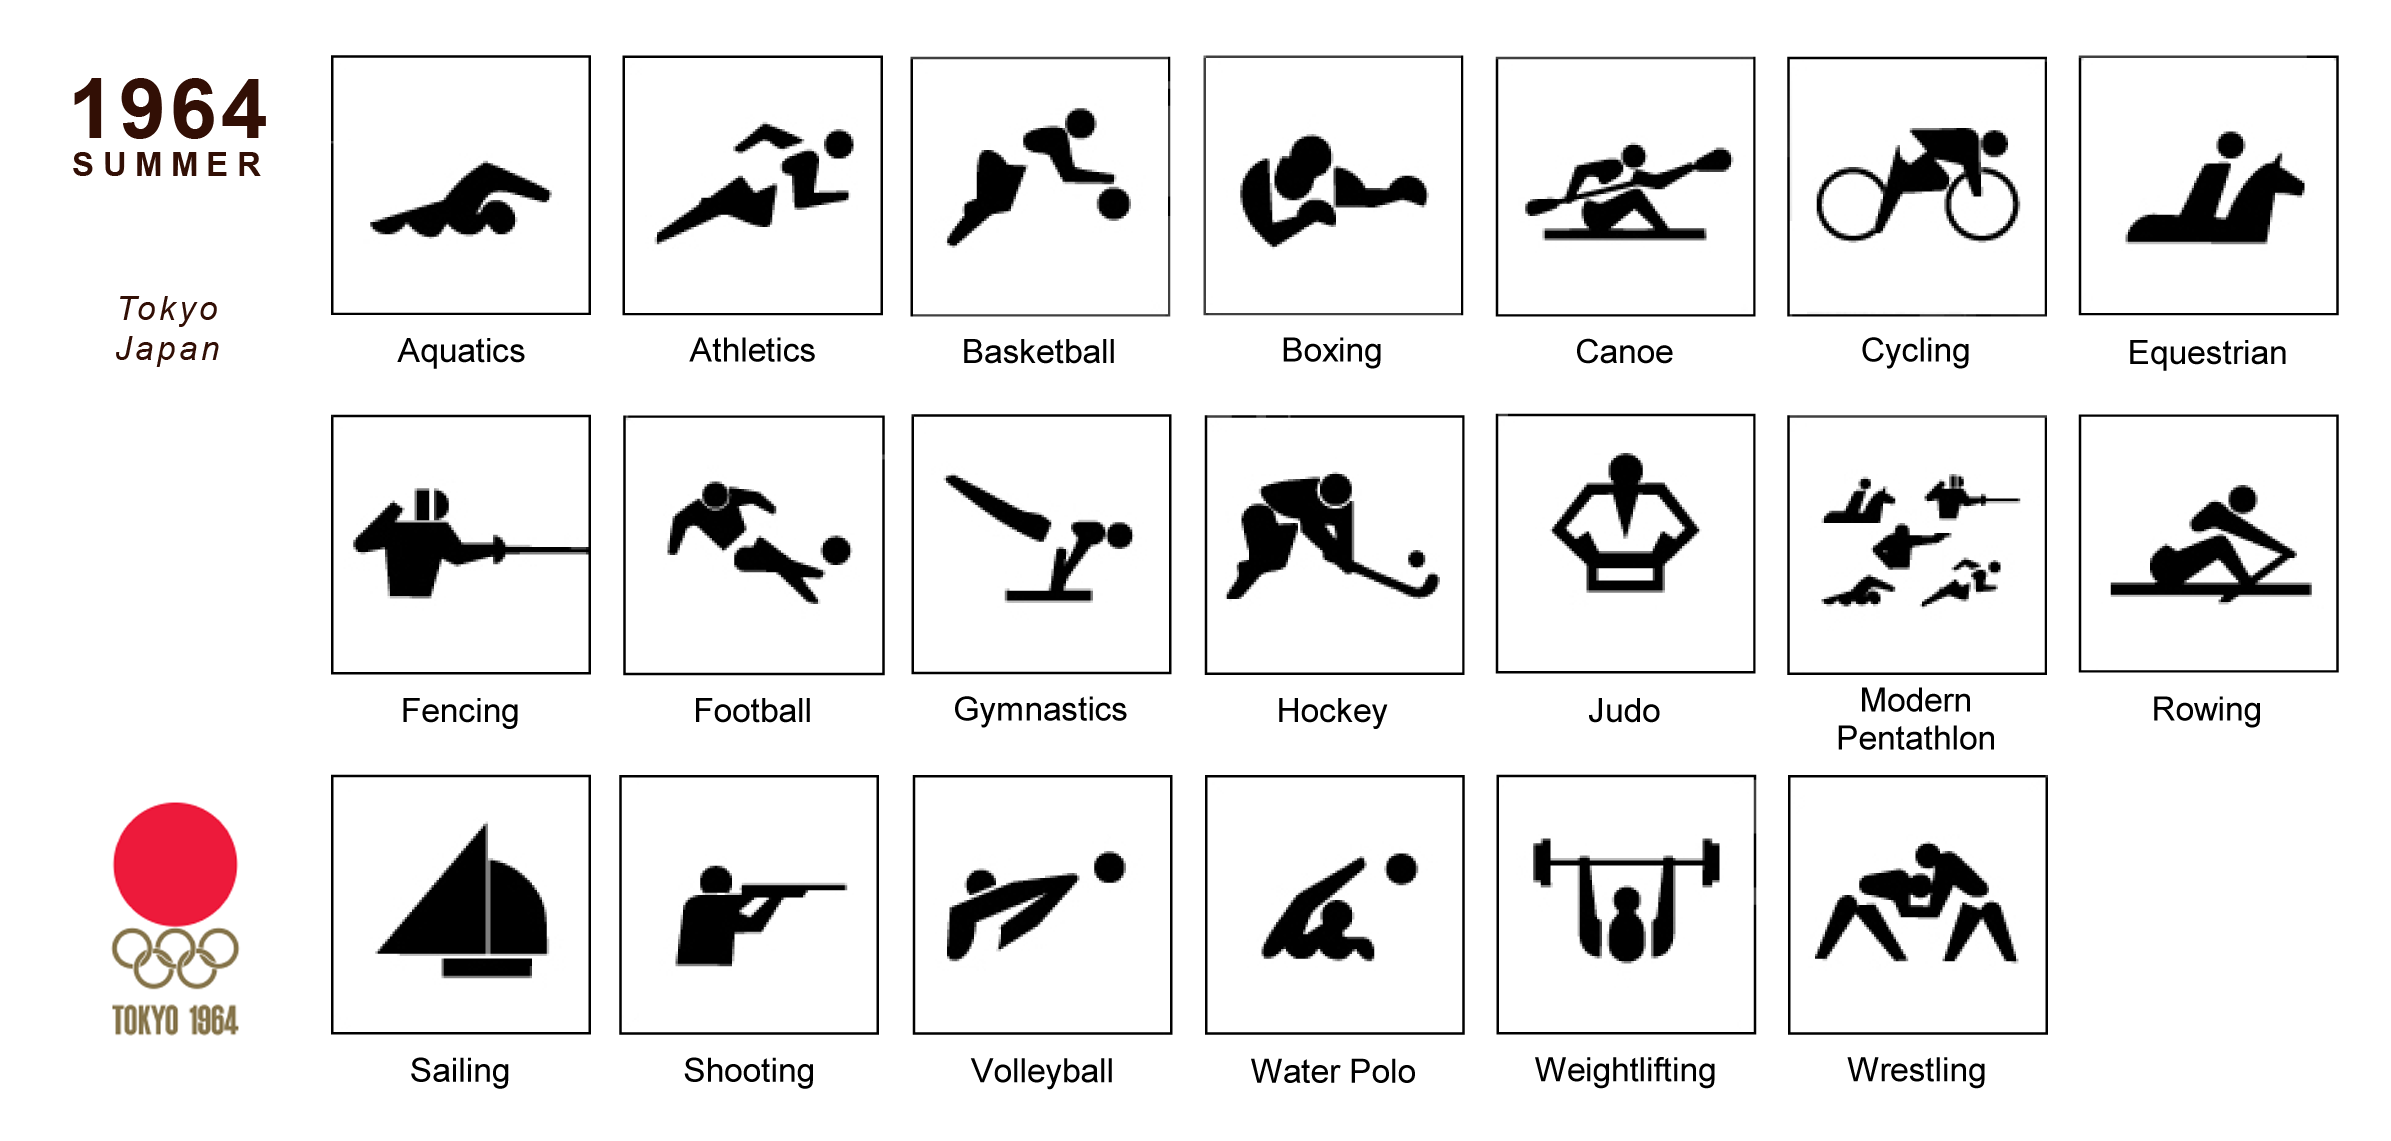 Start A Fire Pictogram Olympic Games Olympics